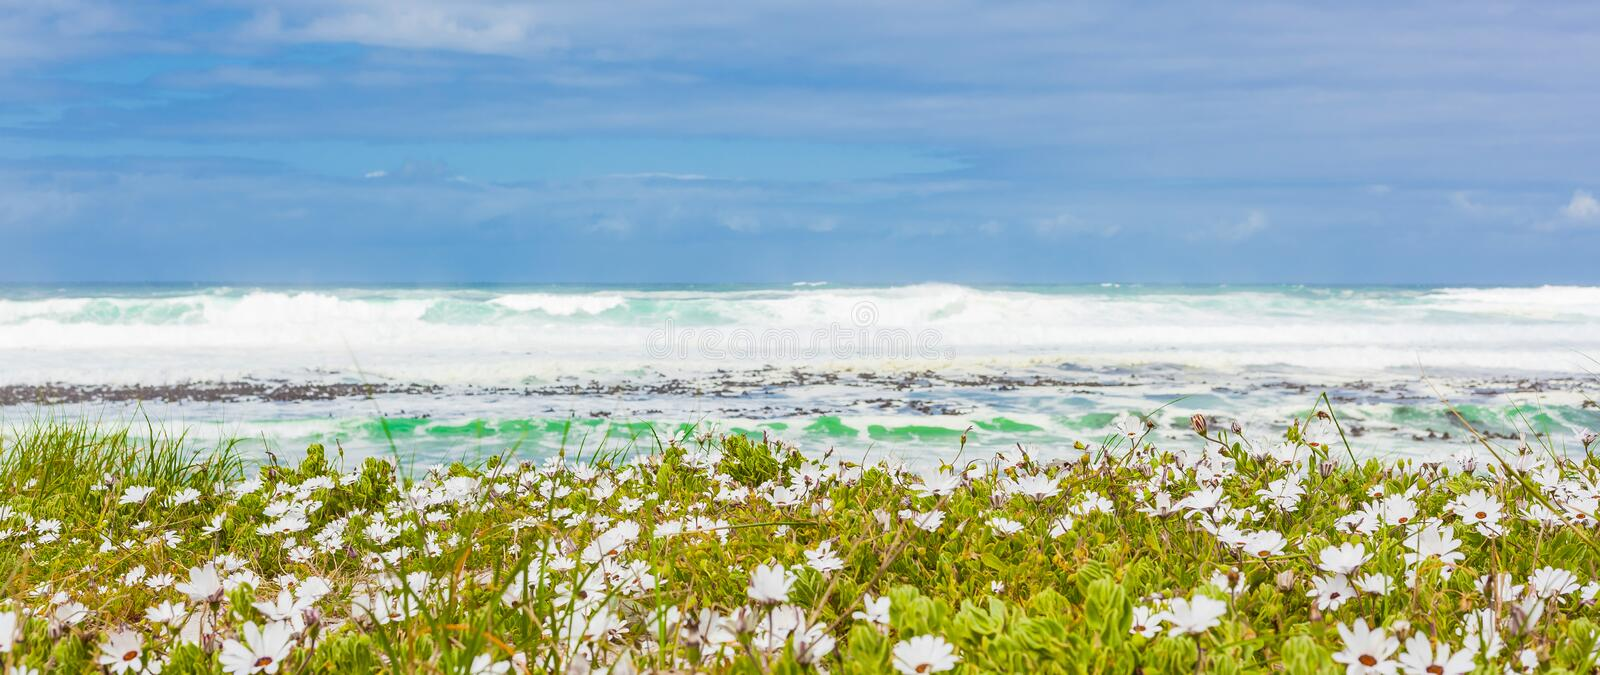 White coastal flowers on a beach in Cape Town stock photo